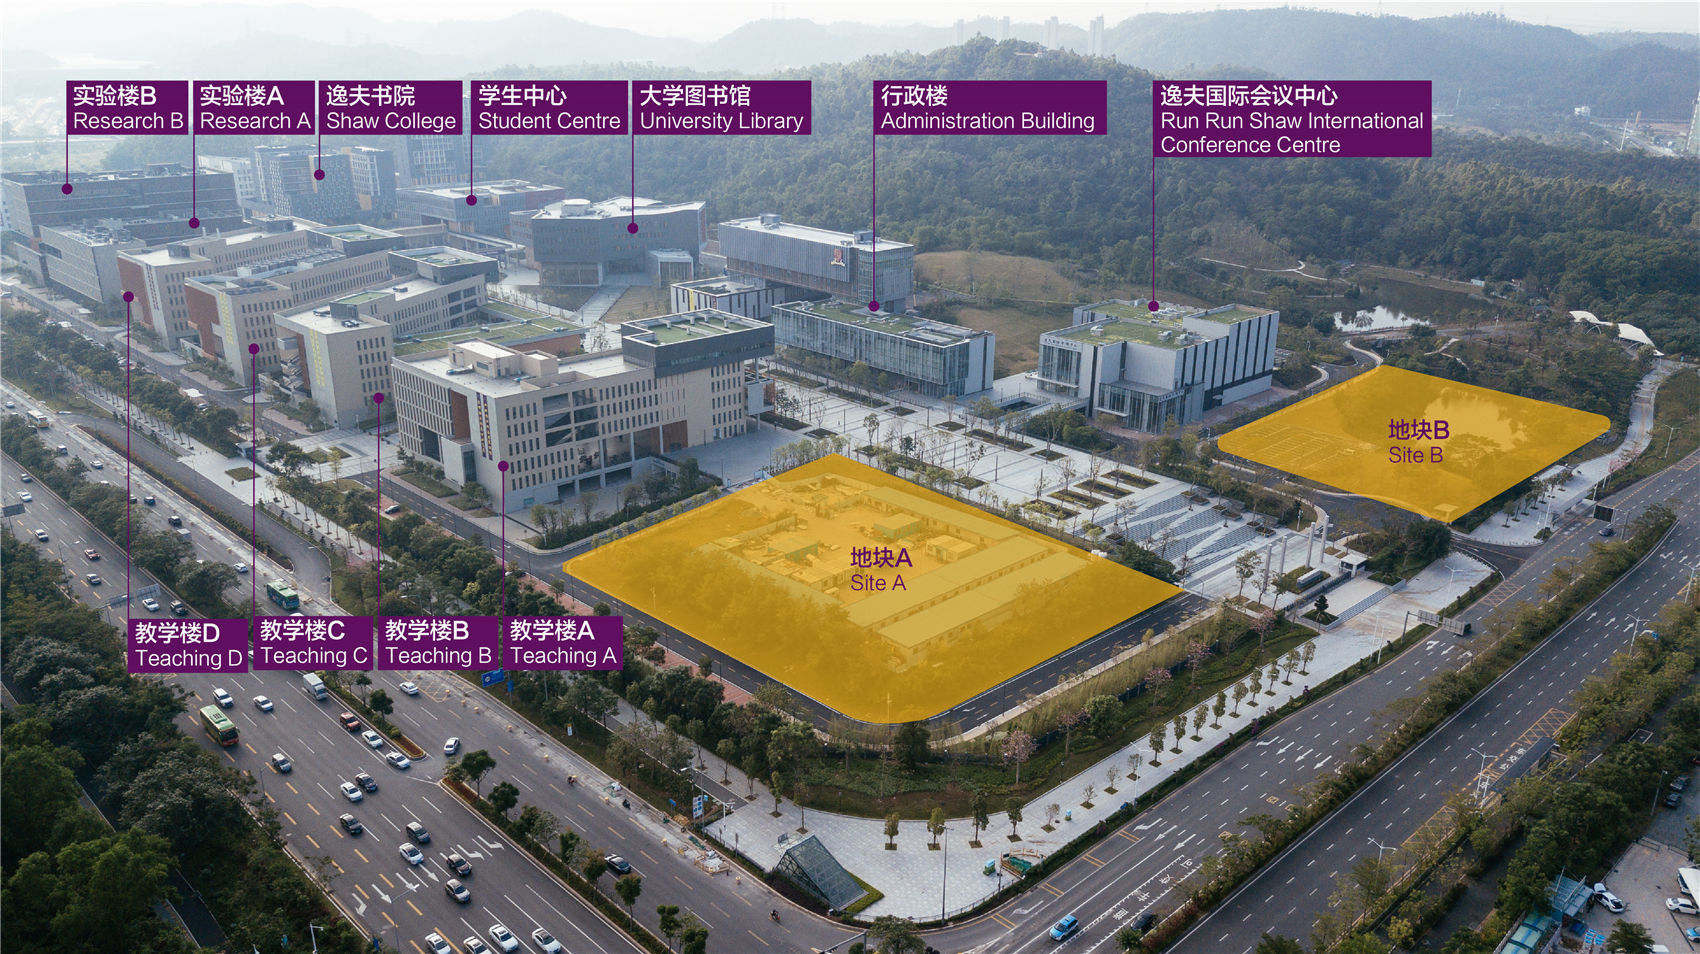 校园下园现状与地块A、B  Lower Campus Current Condition and Site A, B  ©有方